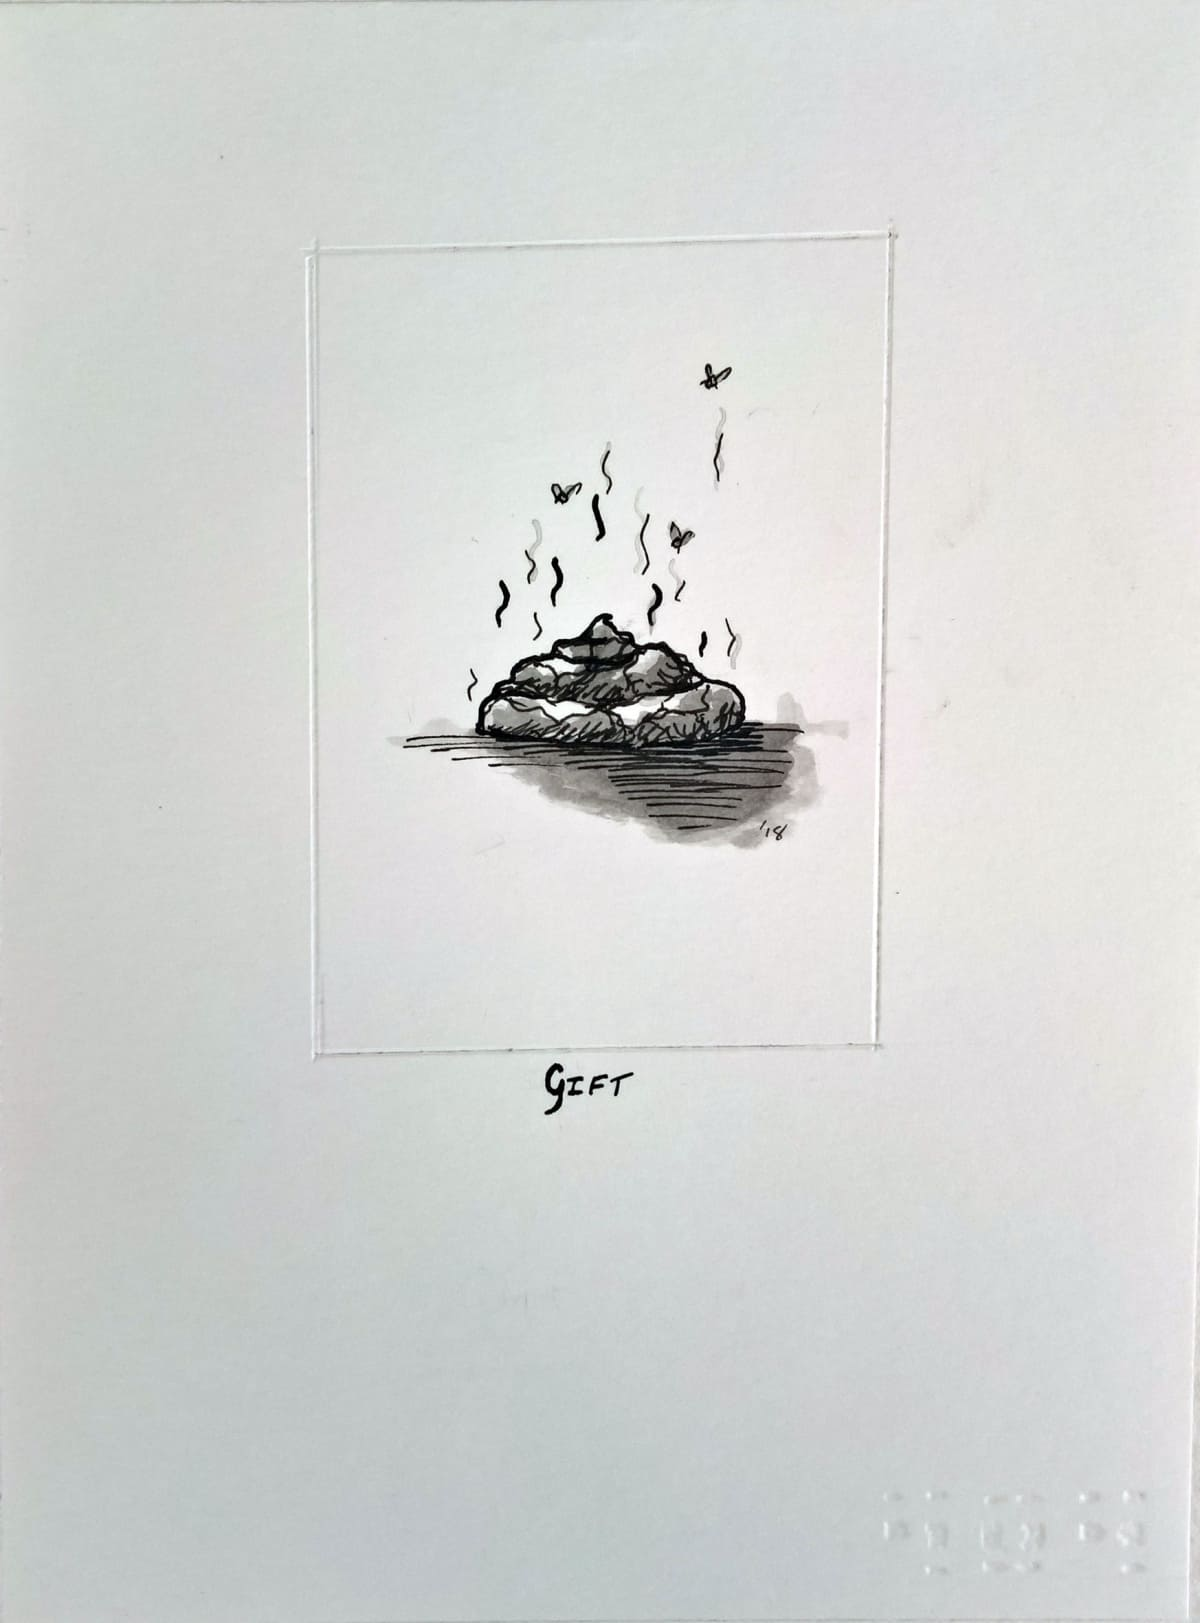 404, Gift (A), 2018